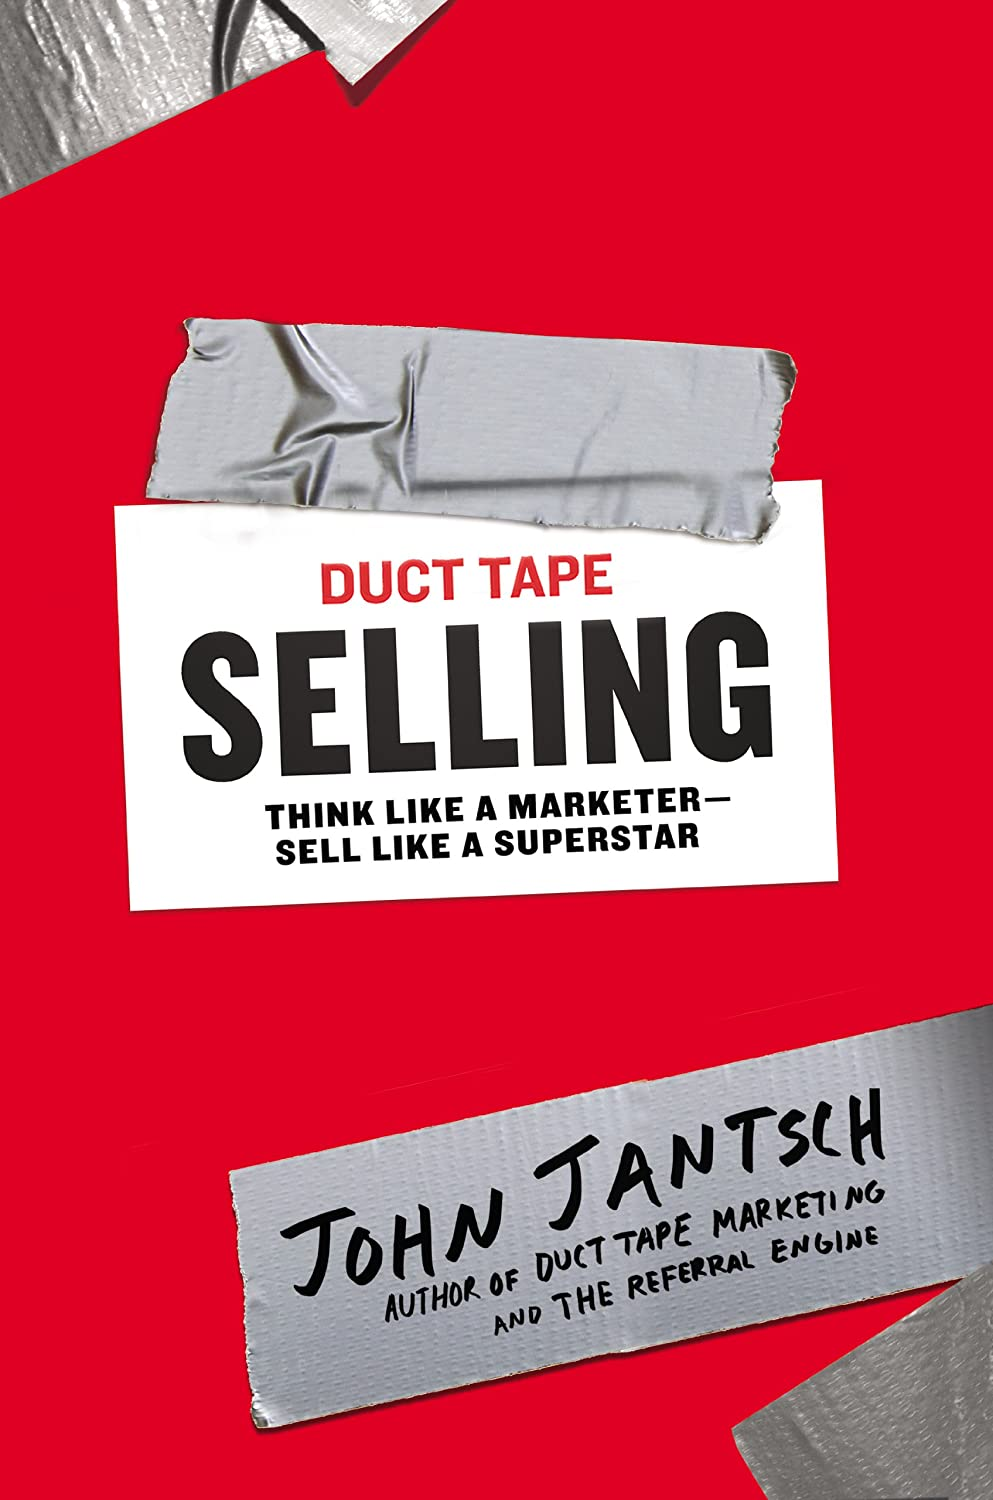 Duct Tape Selling Concern